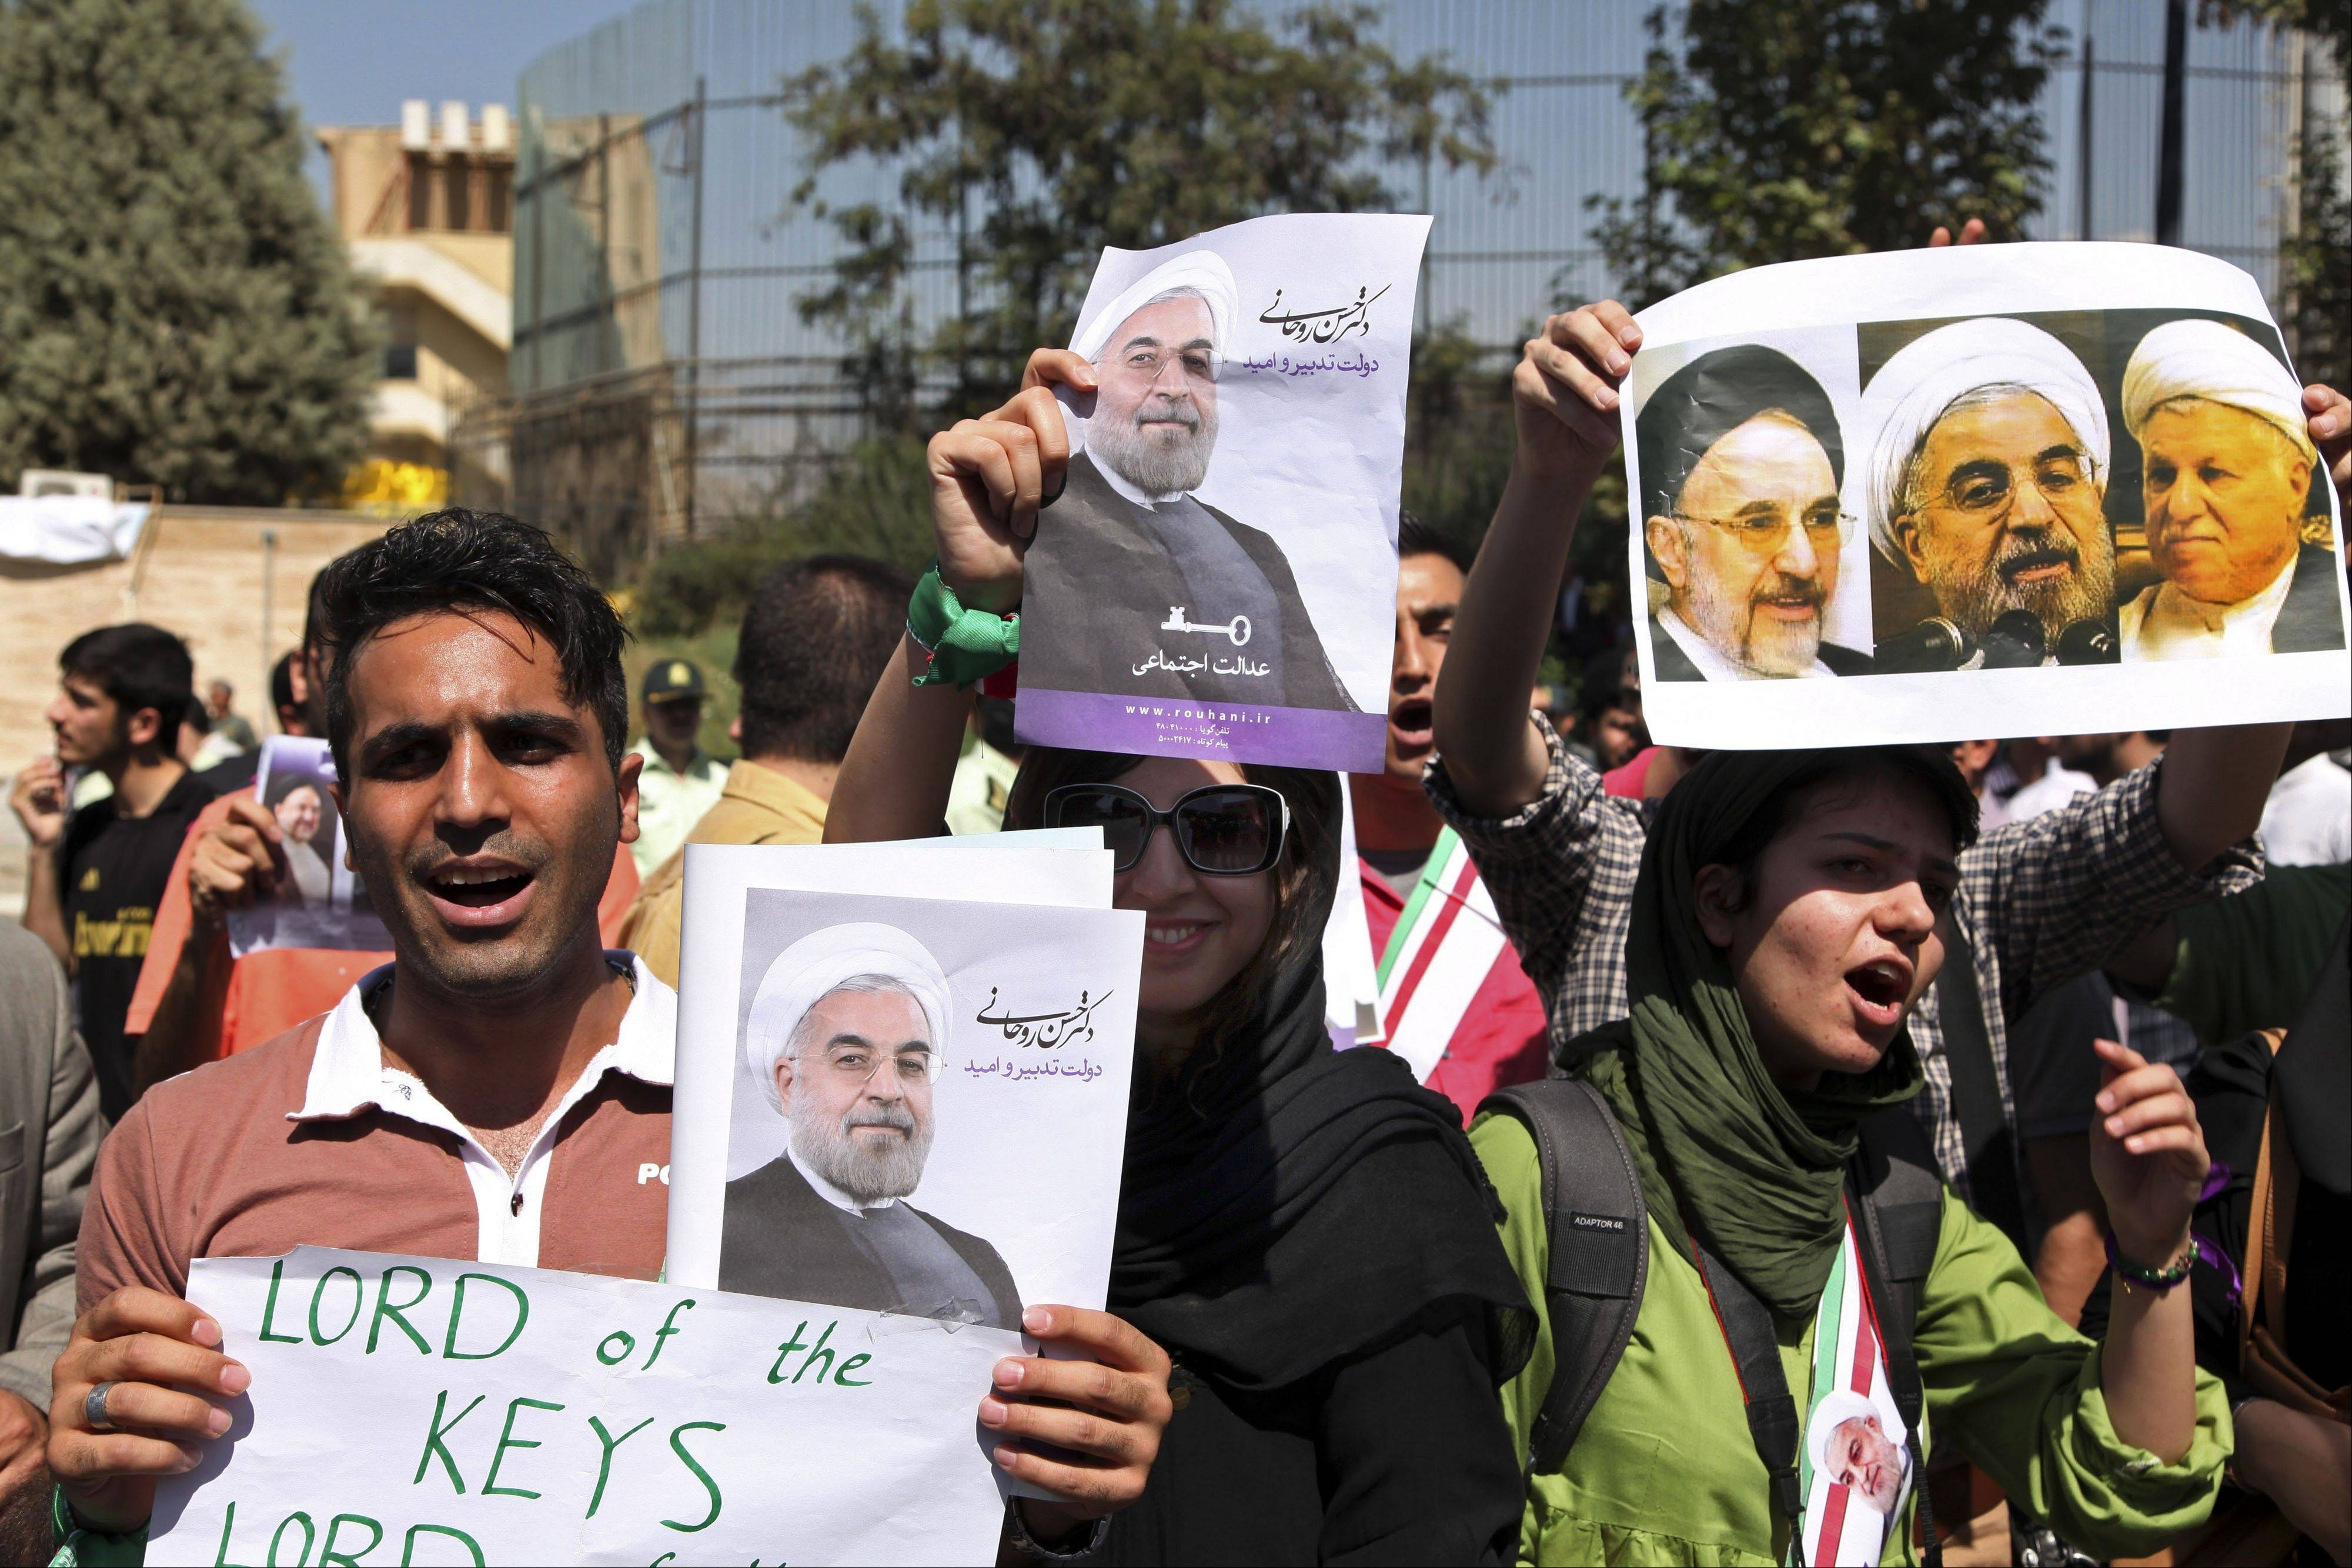 Supporters of Iranian President Hassan Rouhani, hold posters with photos of him, upon his arrival from the U.S. near the Mehrabad airport in Tehran, Iran, Saturday, Sept. 28. Iranians from across the political spectrum hailed Saturday the historic phone conversation between President Barack Obama and Rouhani, reflecting wide support for an initiative that has the backing of both reformists and the country's conservative clerical leadership.